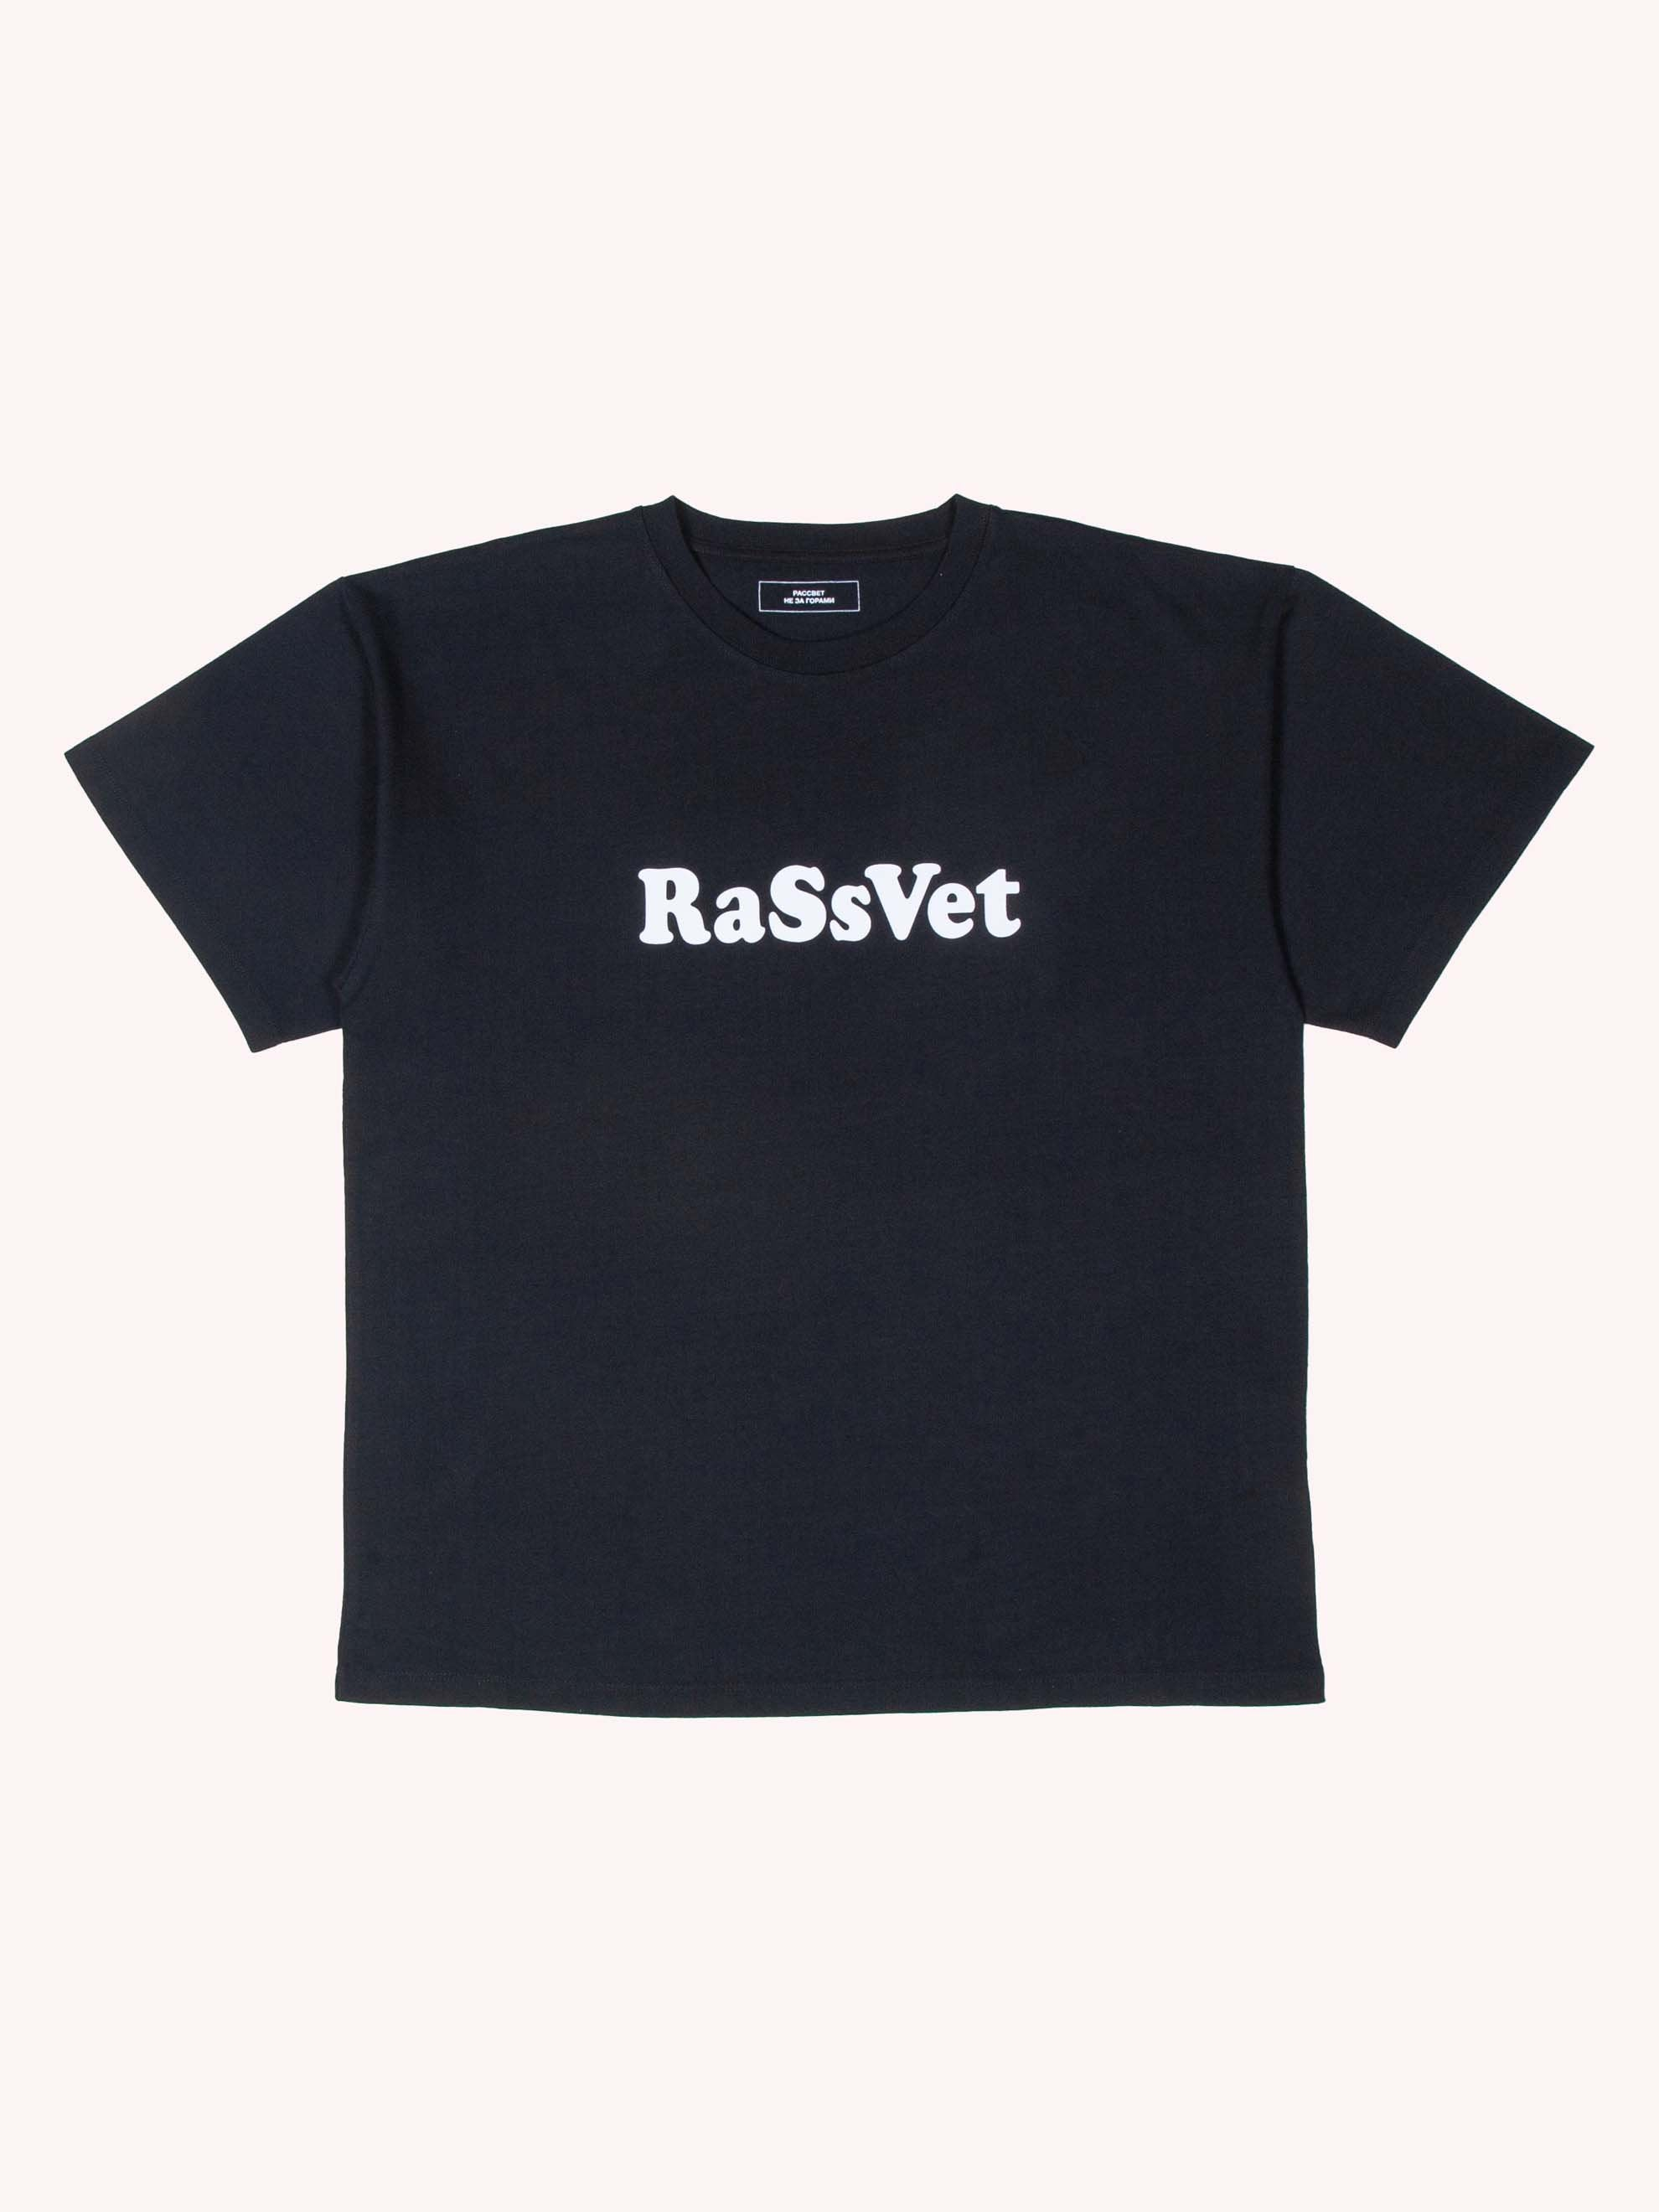 Black Rassvet T-Shirt 1